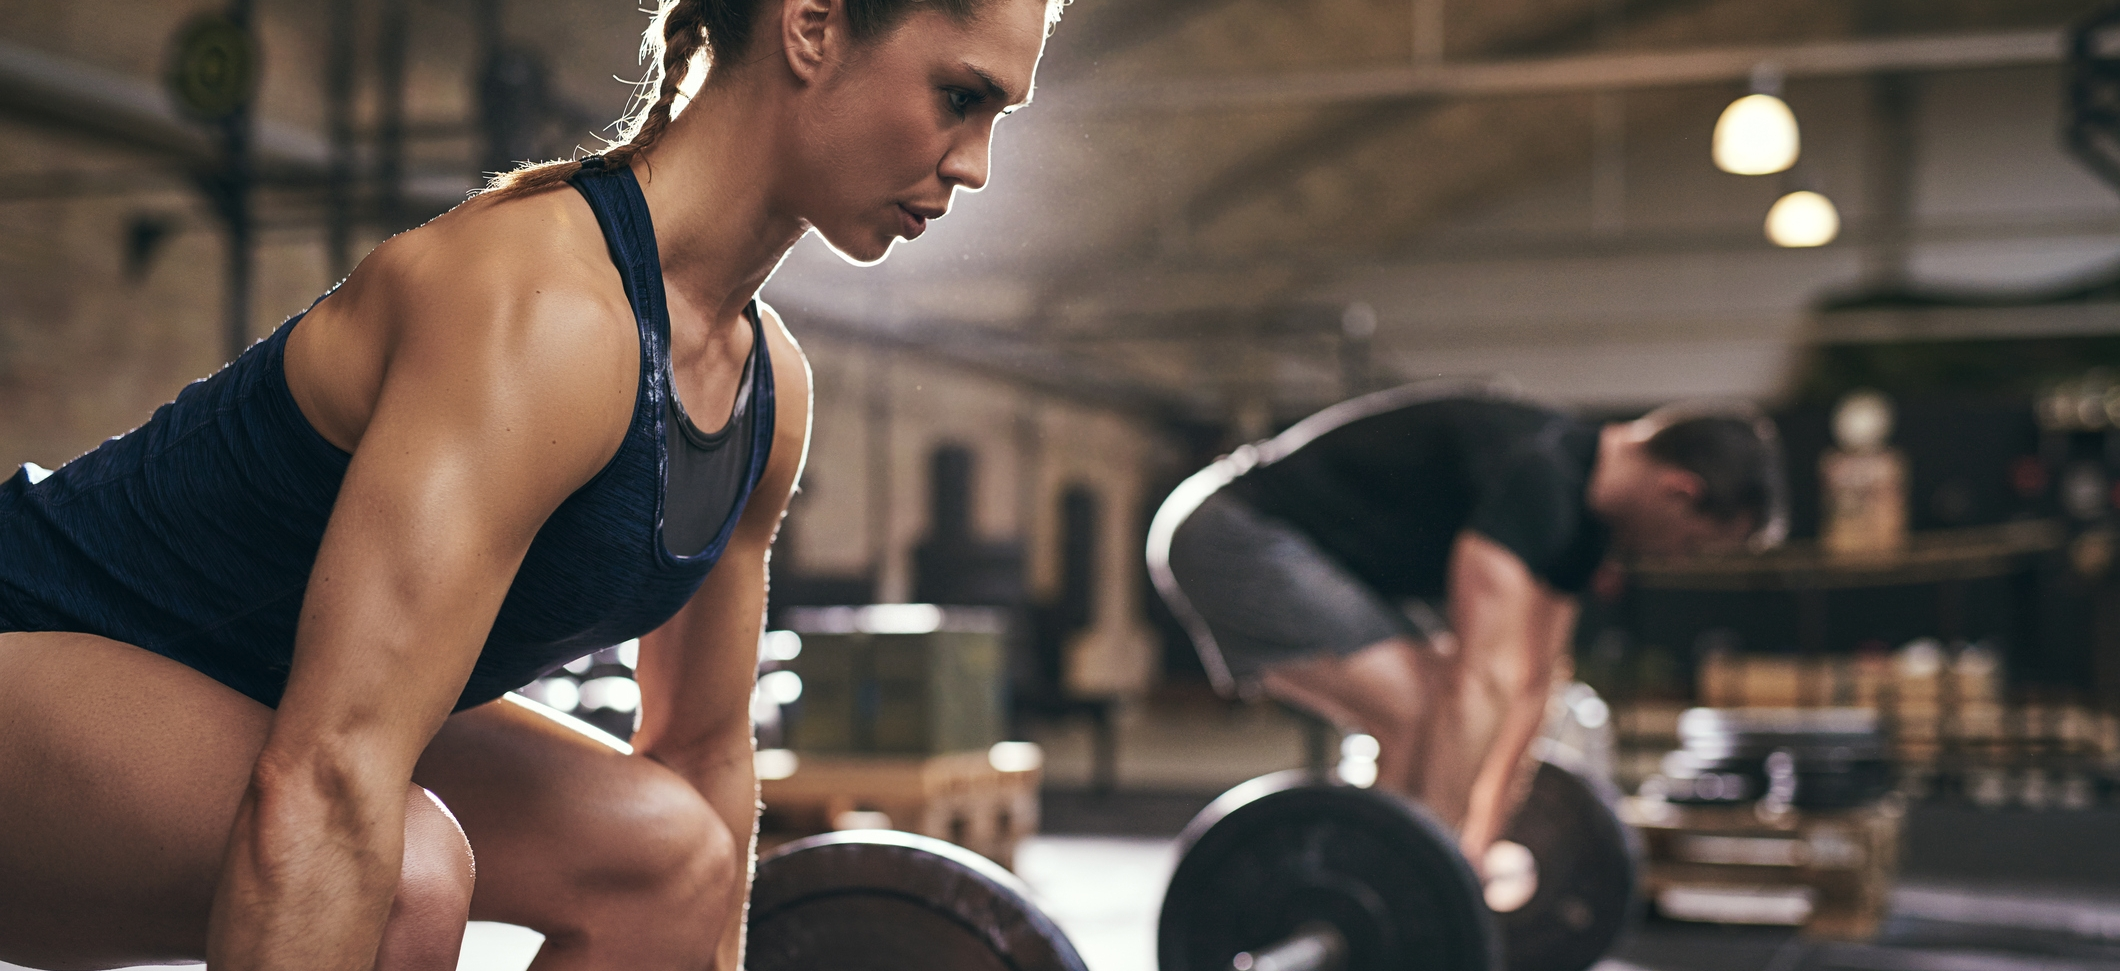 Benefits of Personal training -